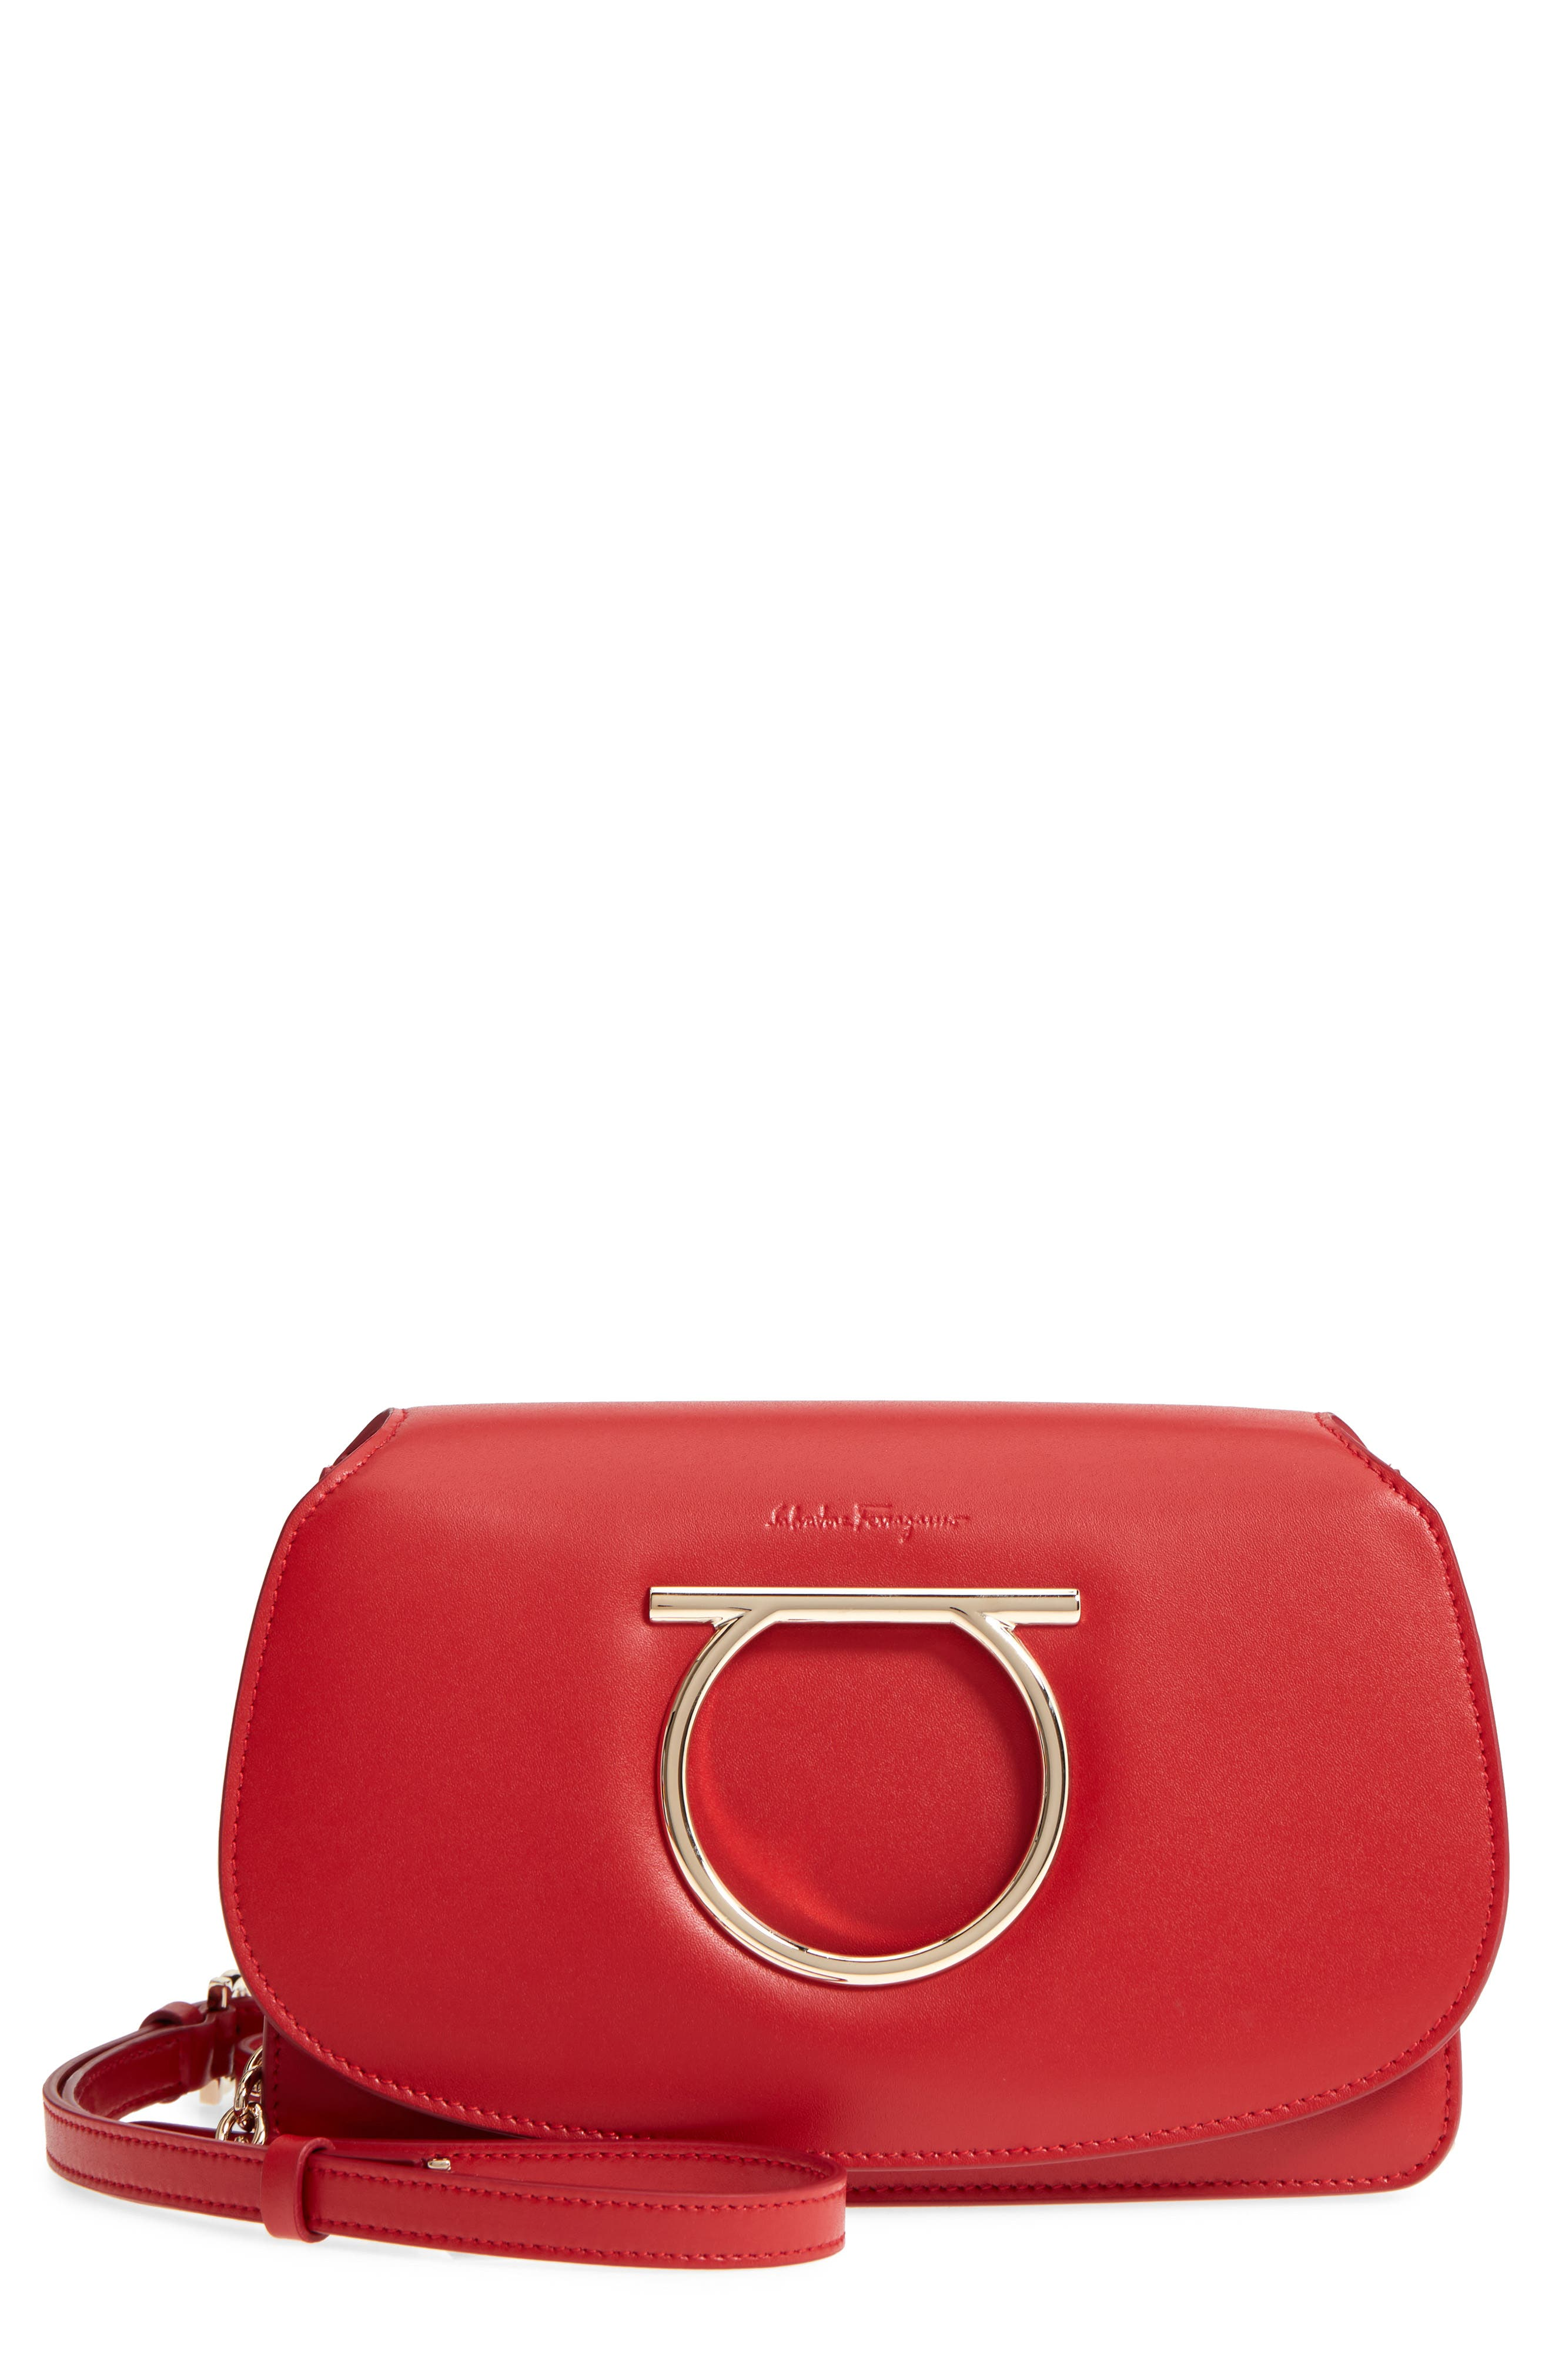 a9ffca36079 Red Salvatore Ferragamo Designer Handbags   Wallets   Nordstrom